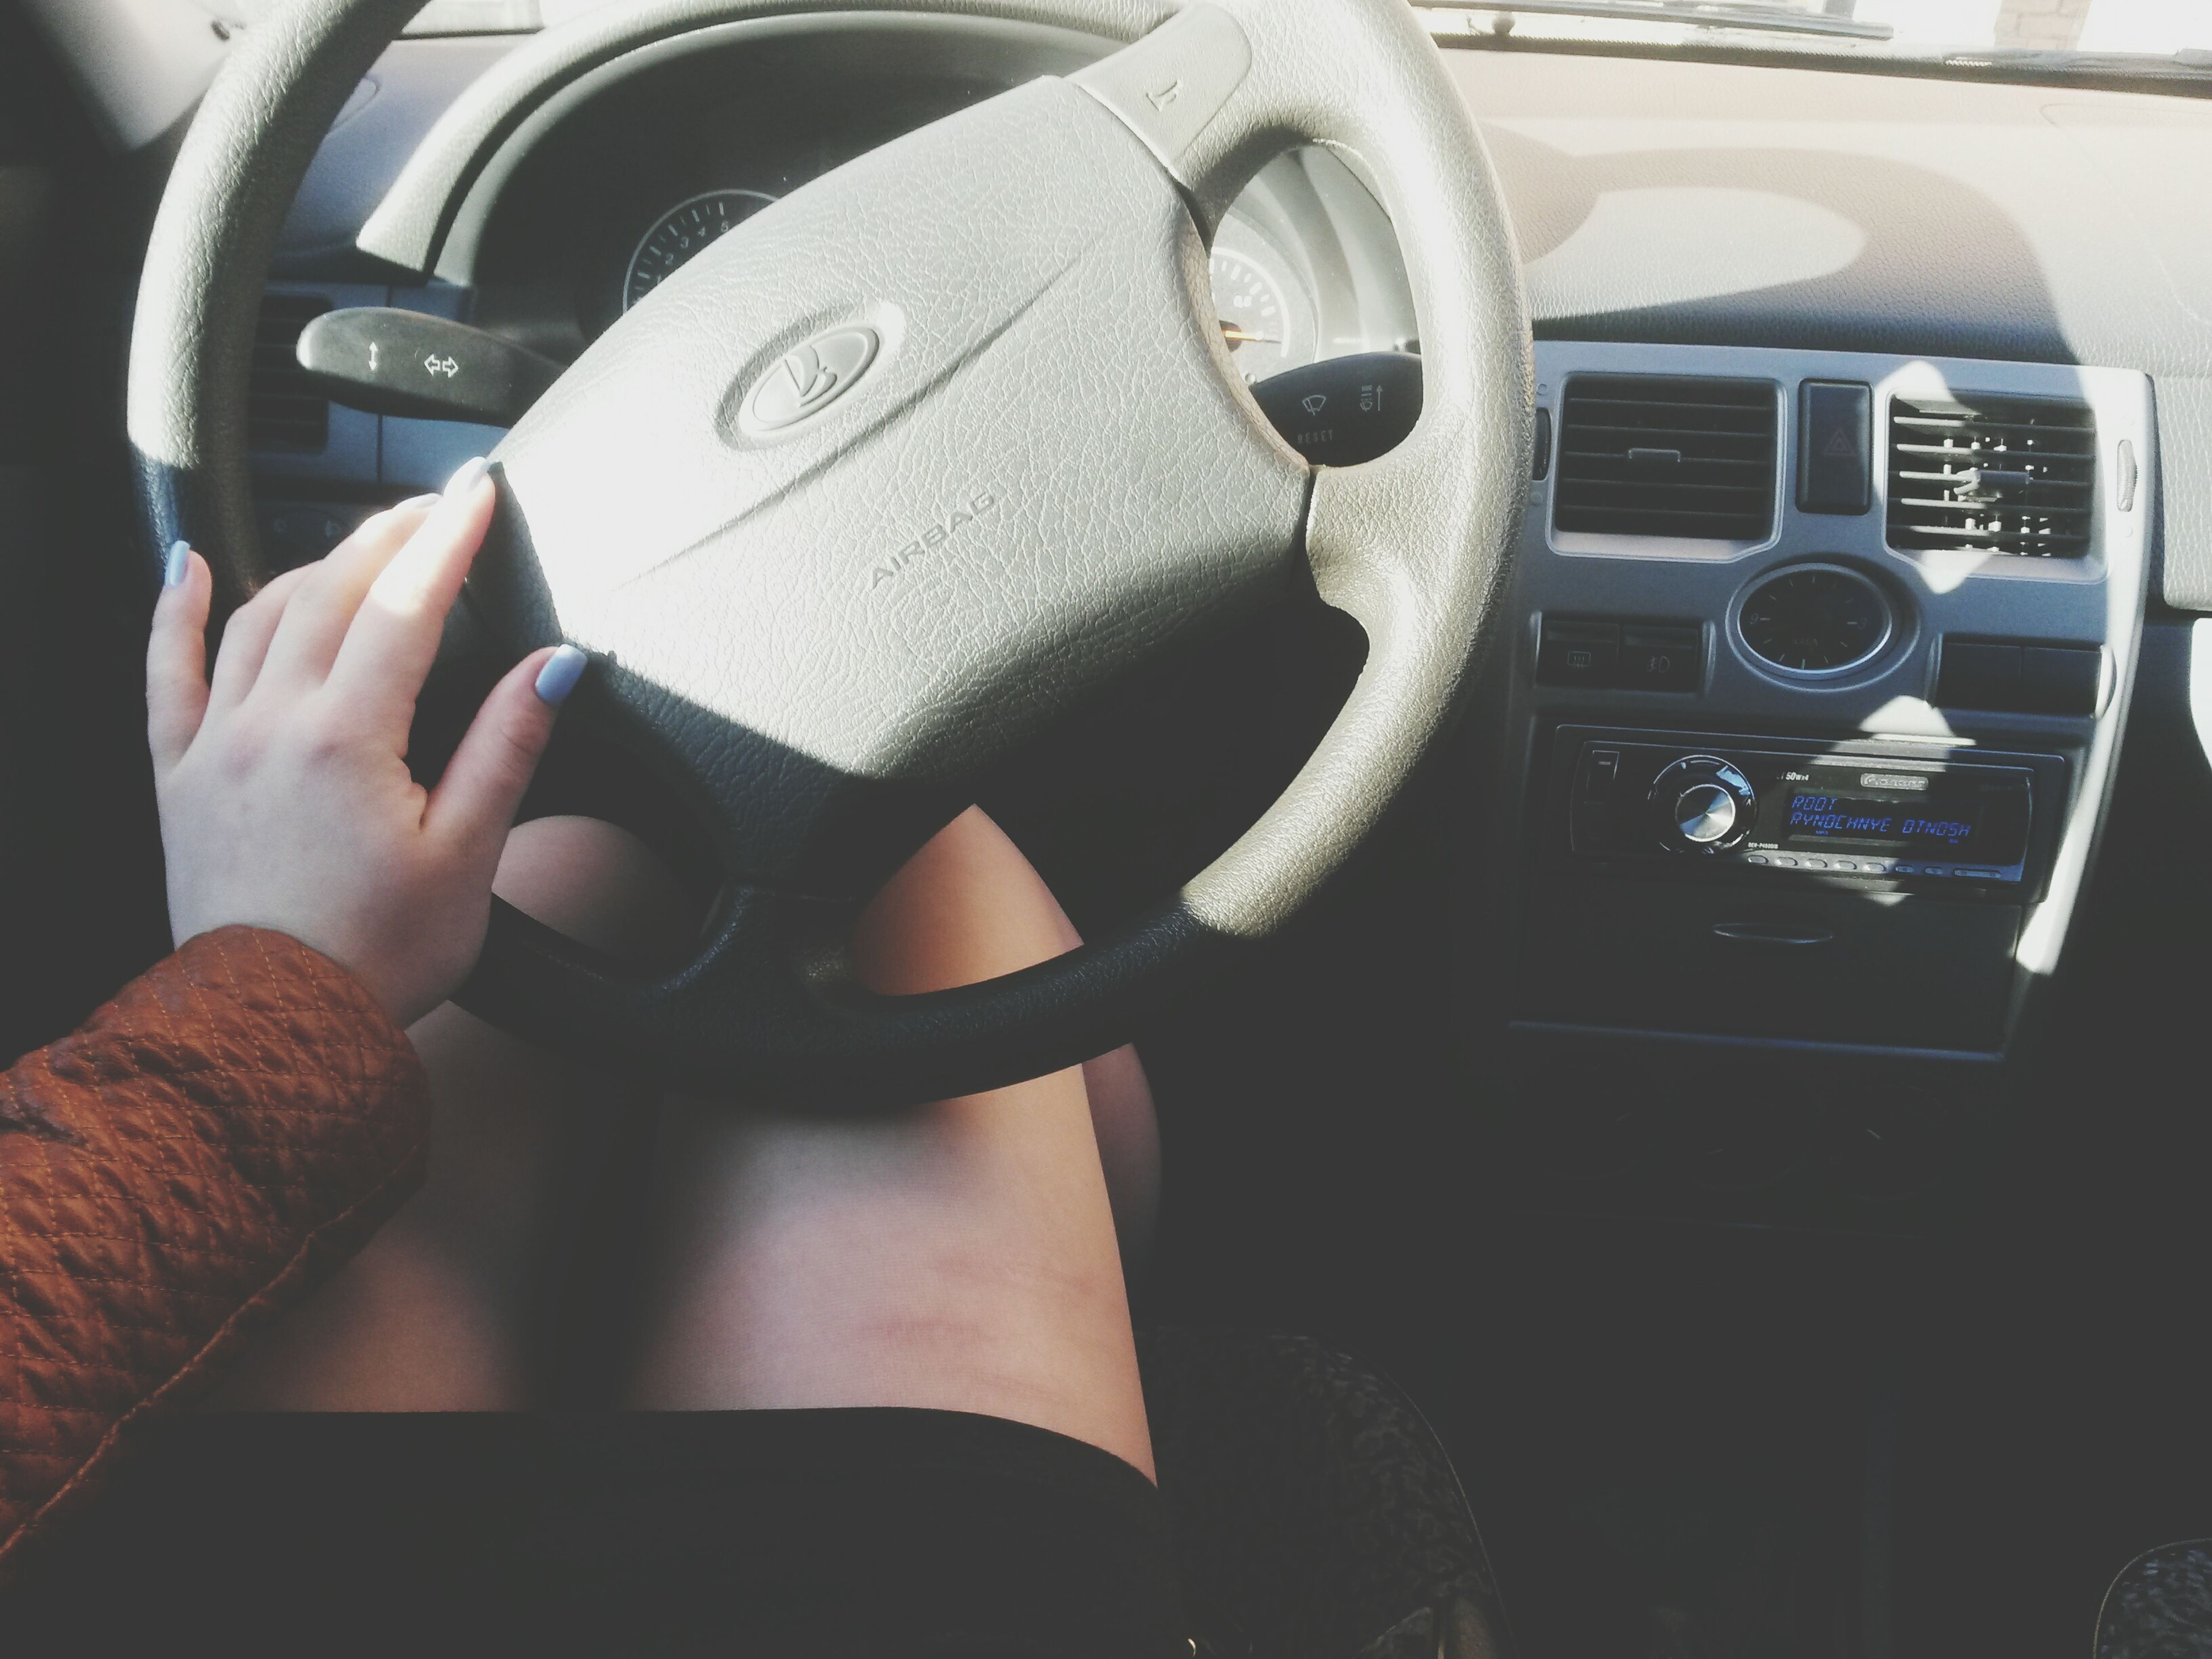 part of, person, cropped, transportation, car, land vehicle, close-up, mode of transport, holding, technology, lifestyles, leisure activity, personal perspective, car interior, photography themes, vehicle interior, focus on foreground